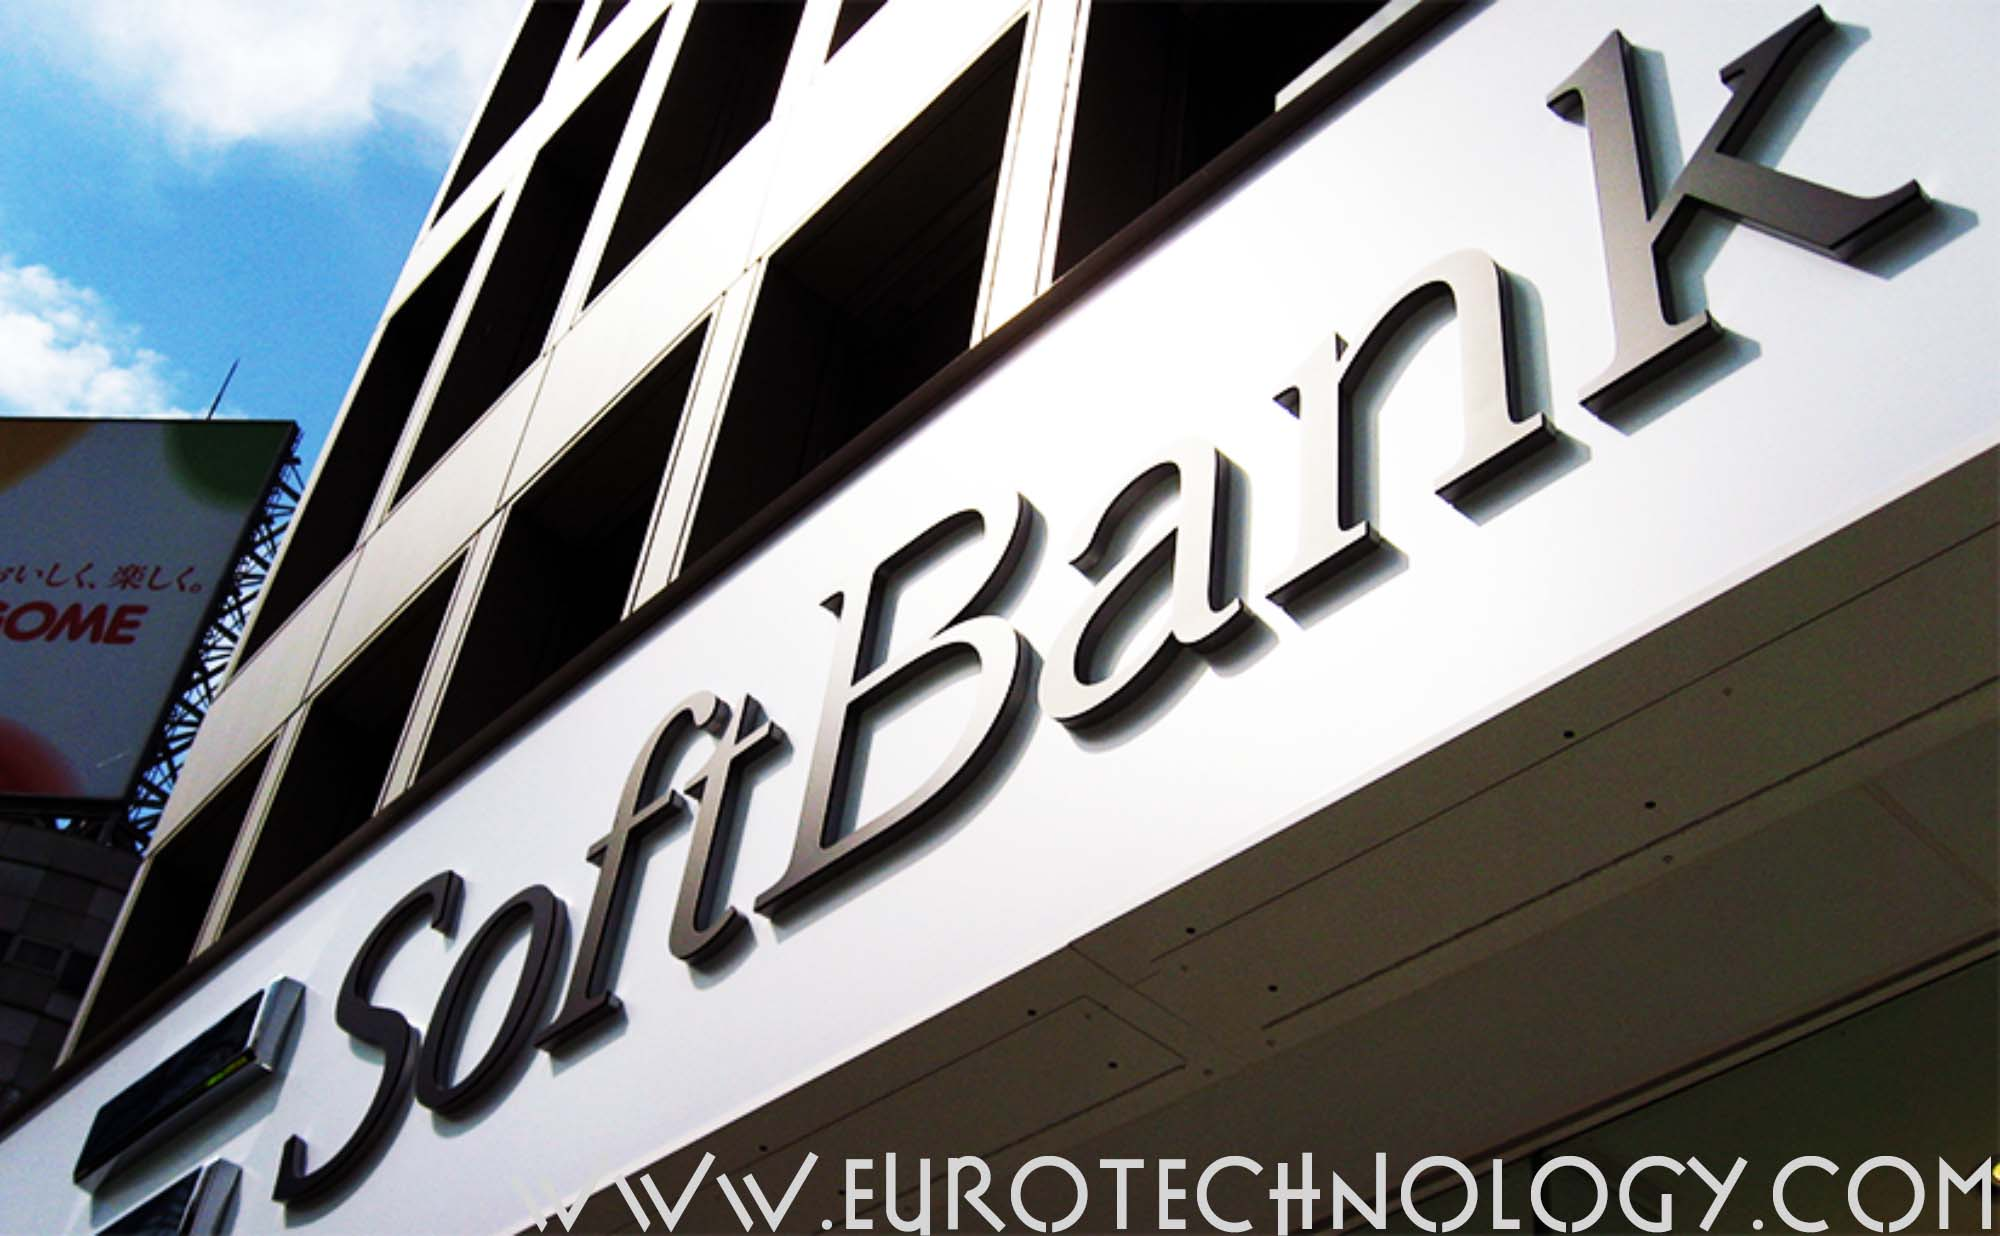 softbank eurotechnology.com